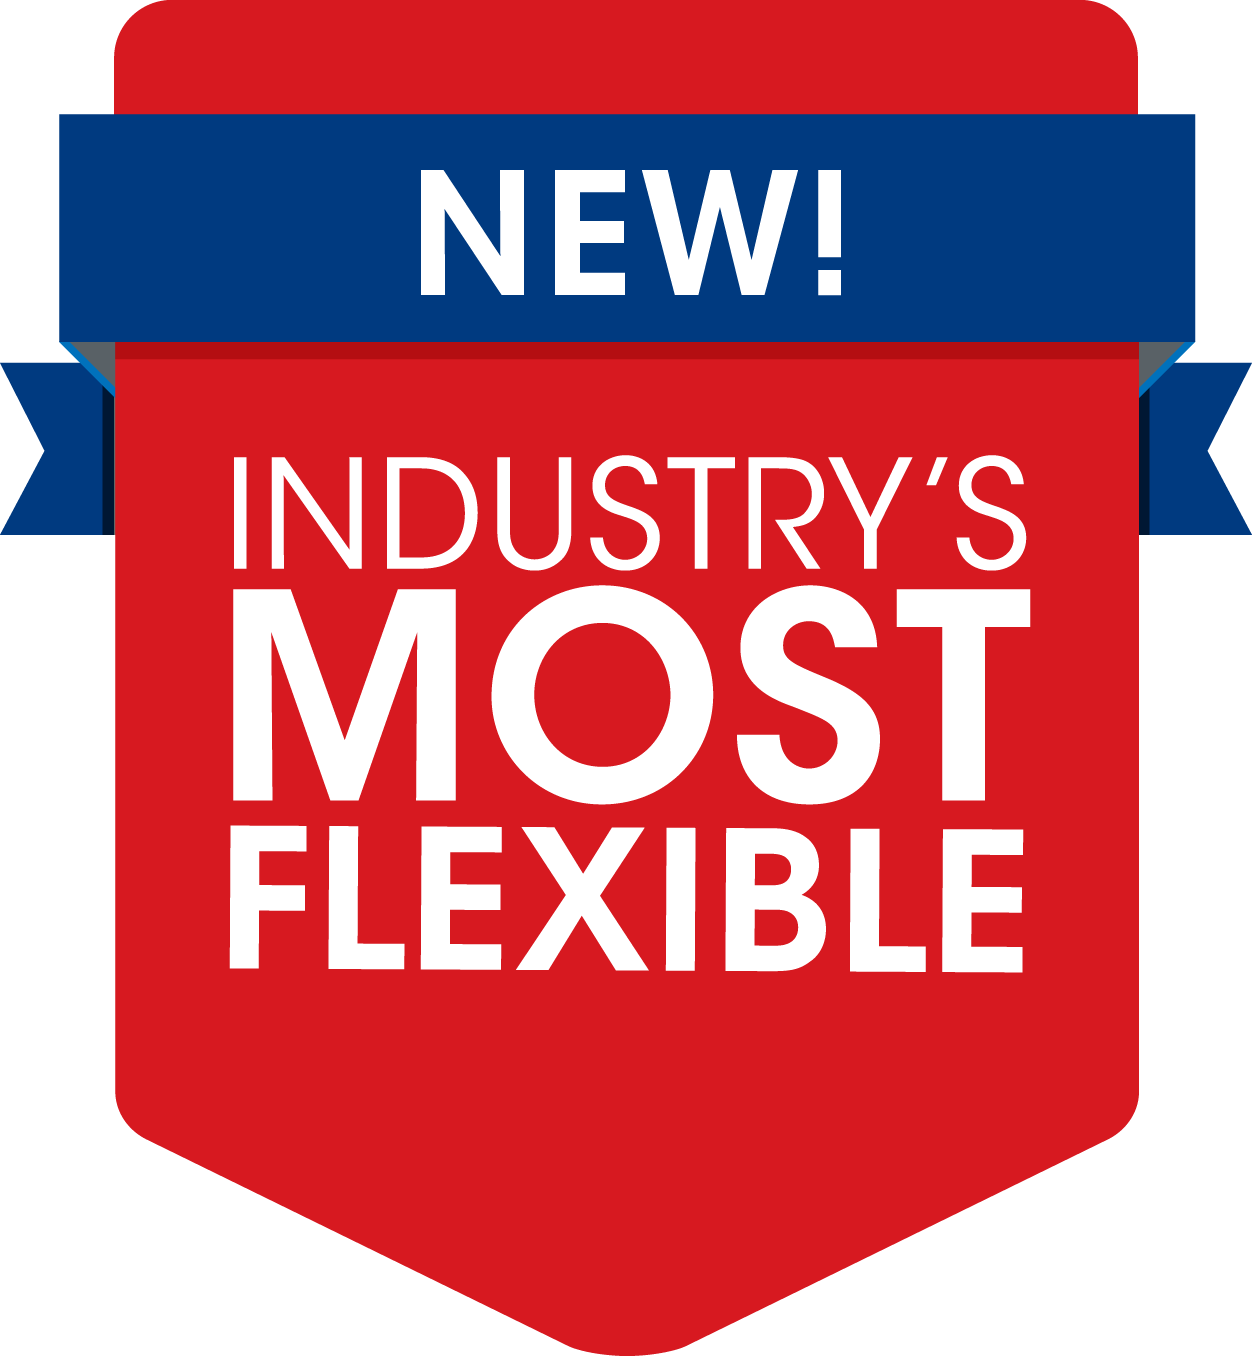 Industry's Most Flexible